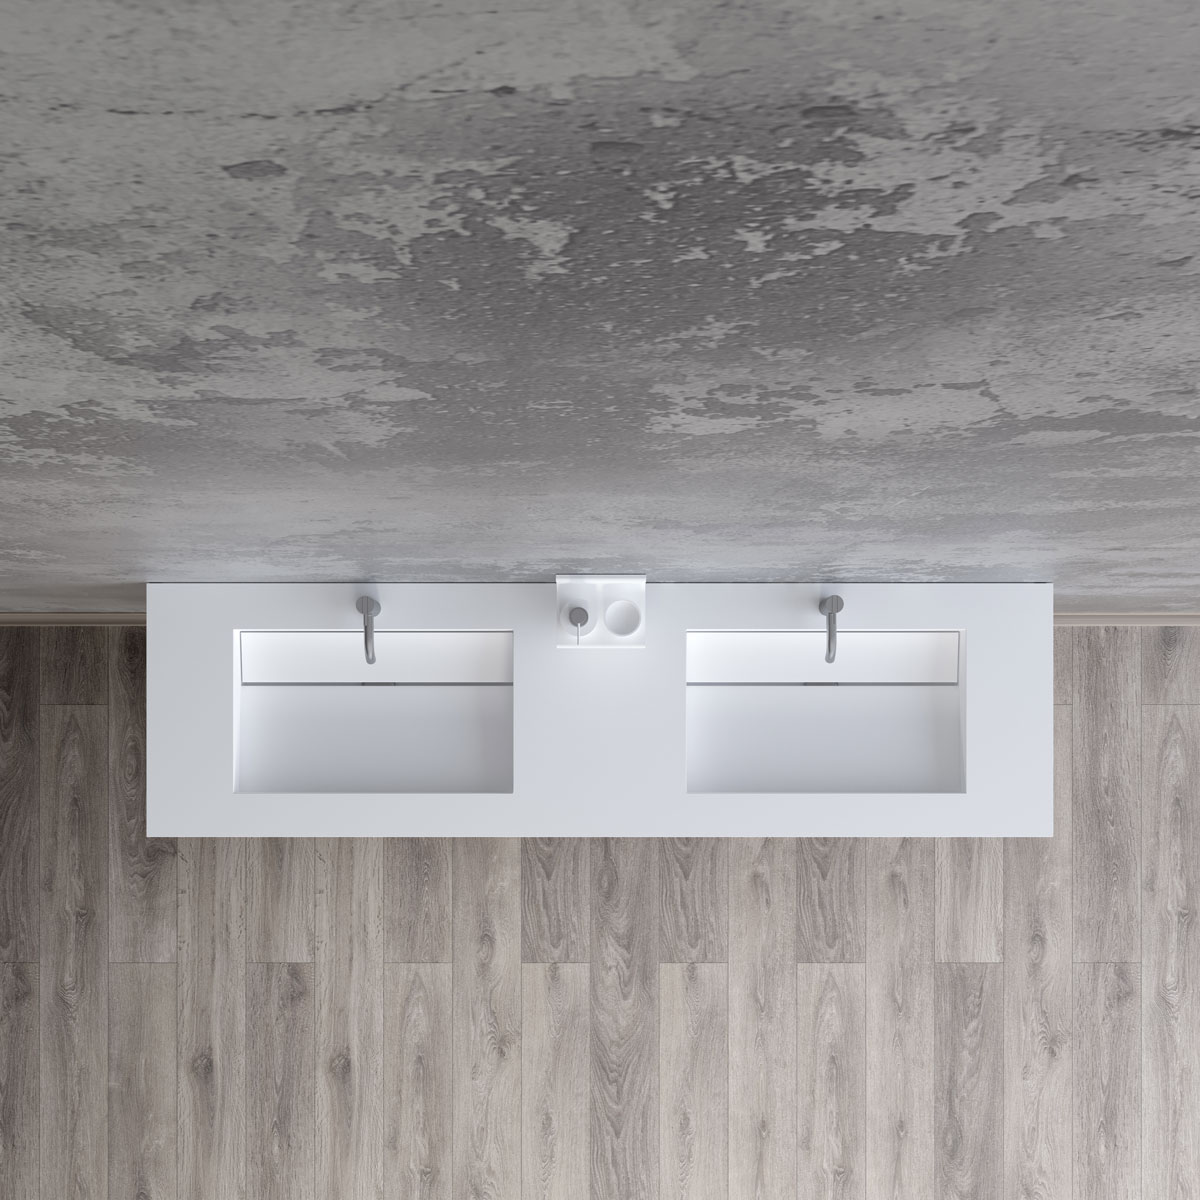 Anholt 160 double wash basin image